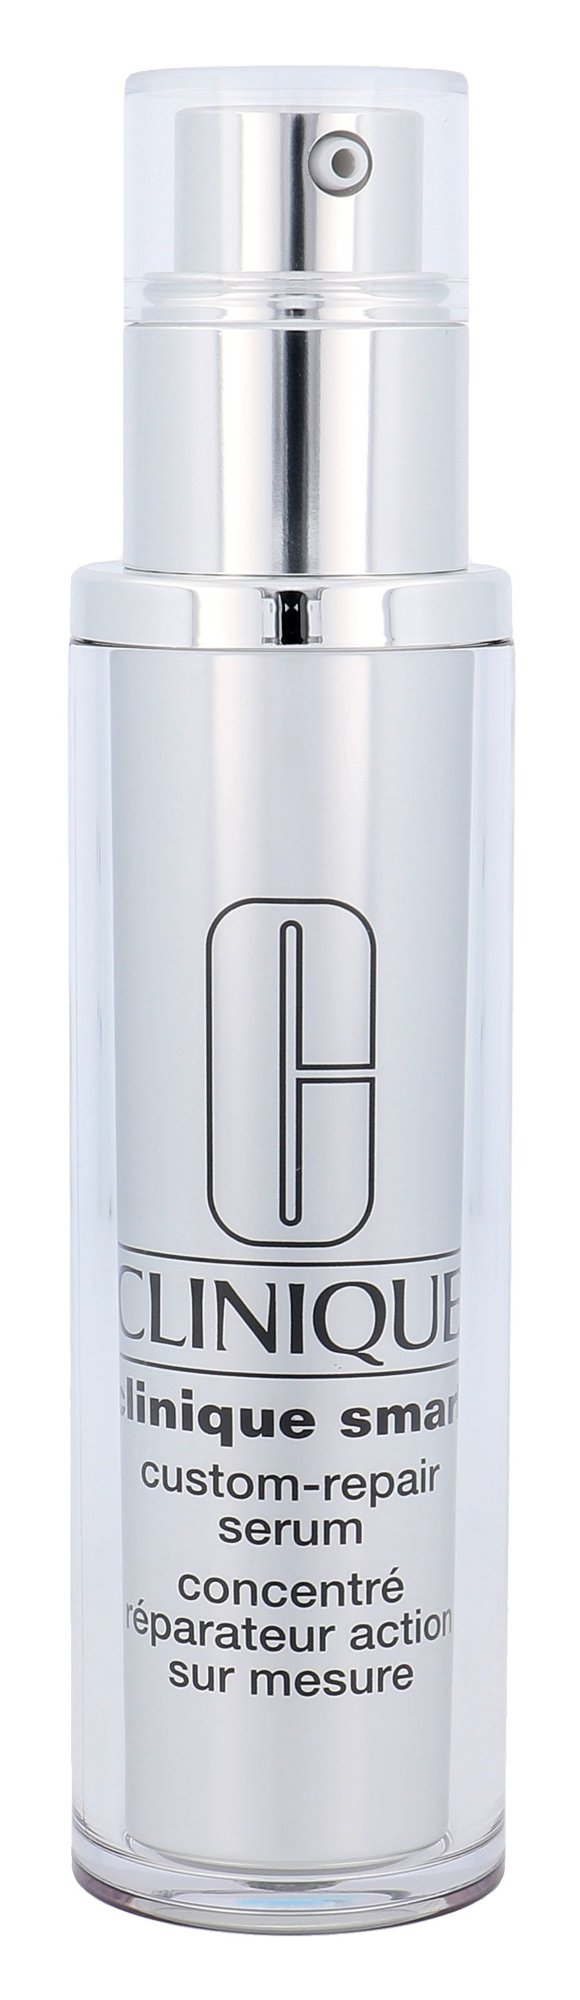 Clinique Clinique Smart Skin Serum 50ml